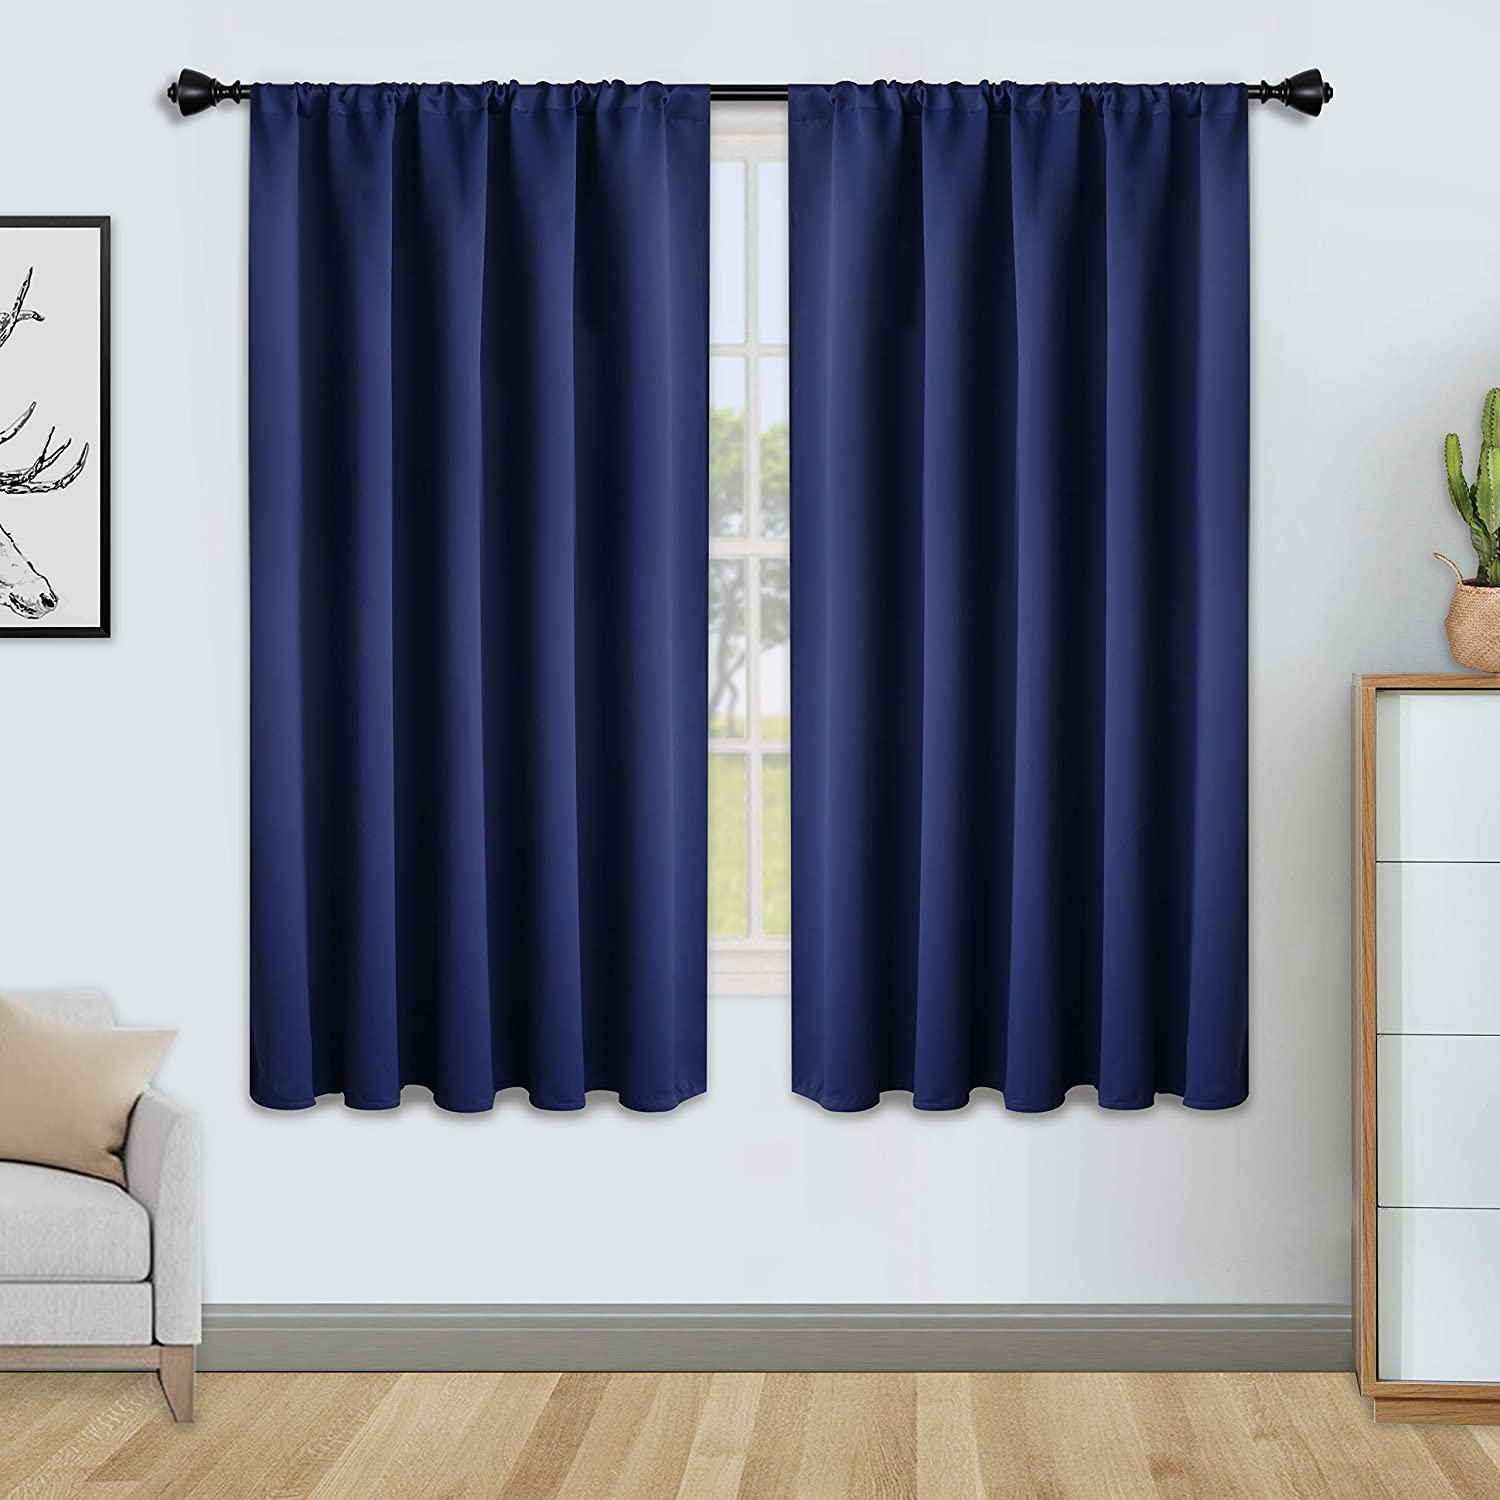 Floweroom Blackout Curtains For Bedroom Thermal Insulated Rod Pocket Window Curtains Darkening Curtain For Living Room Navy 2 Panels W52 X L45 Inch 132cmx114cm Amazon Co Uk Kitchen Home